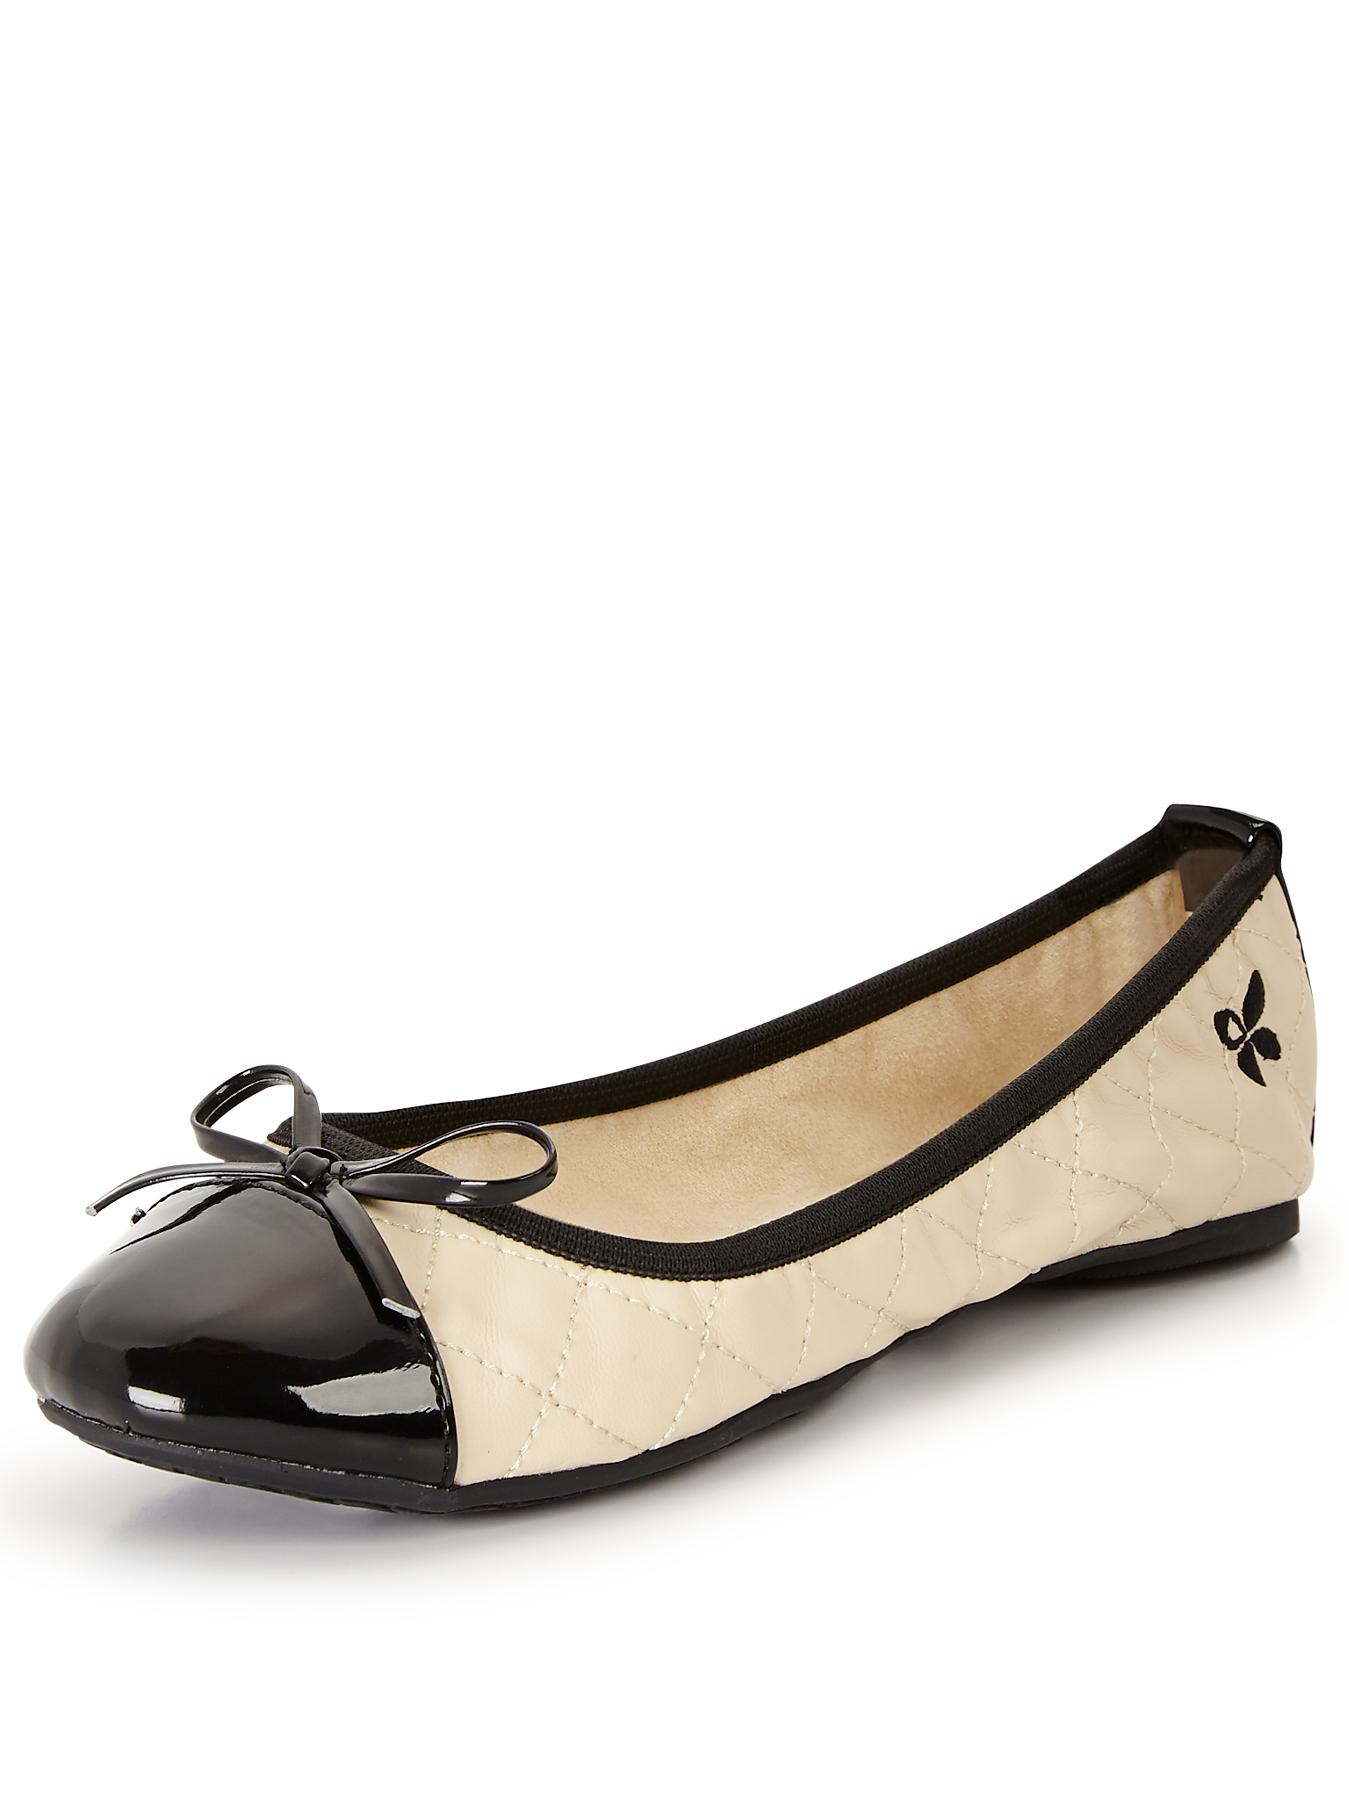 Olivia Ballerinas, Cream